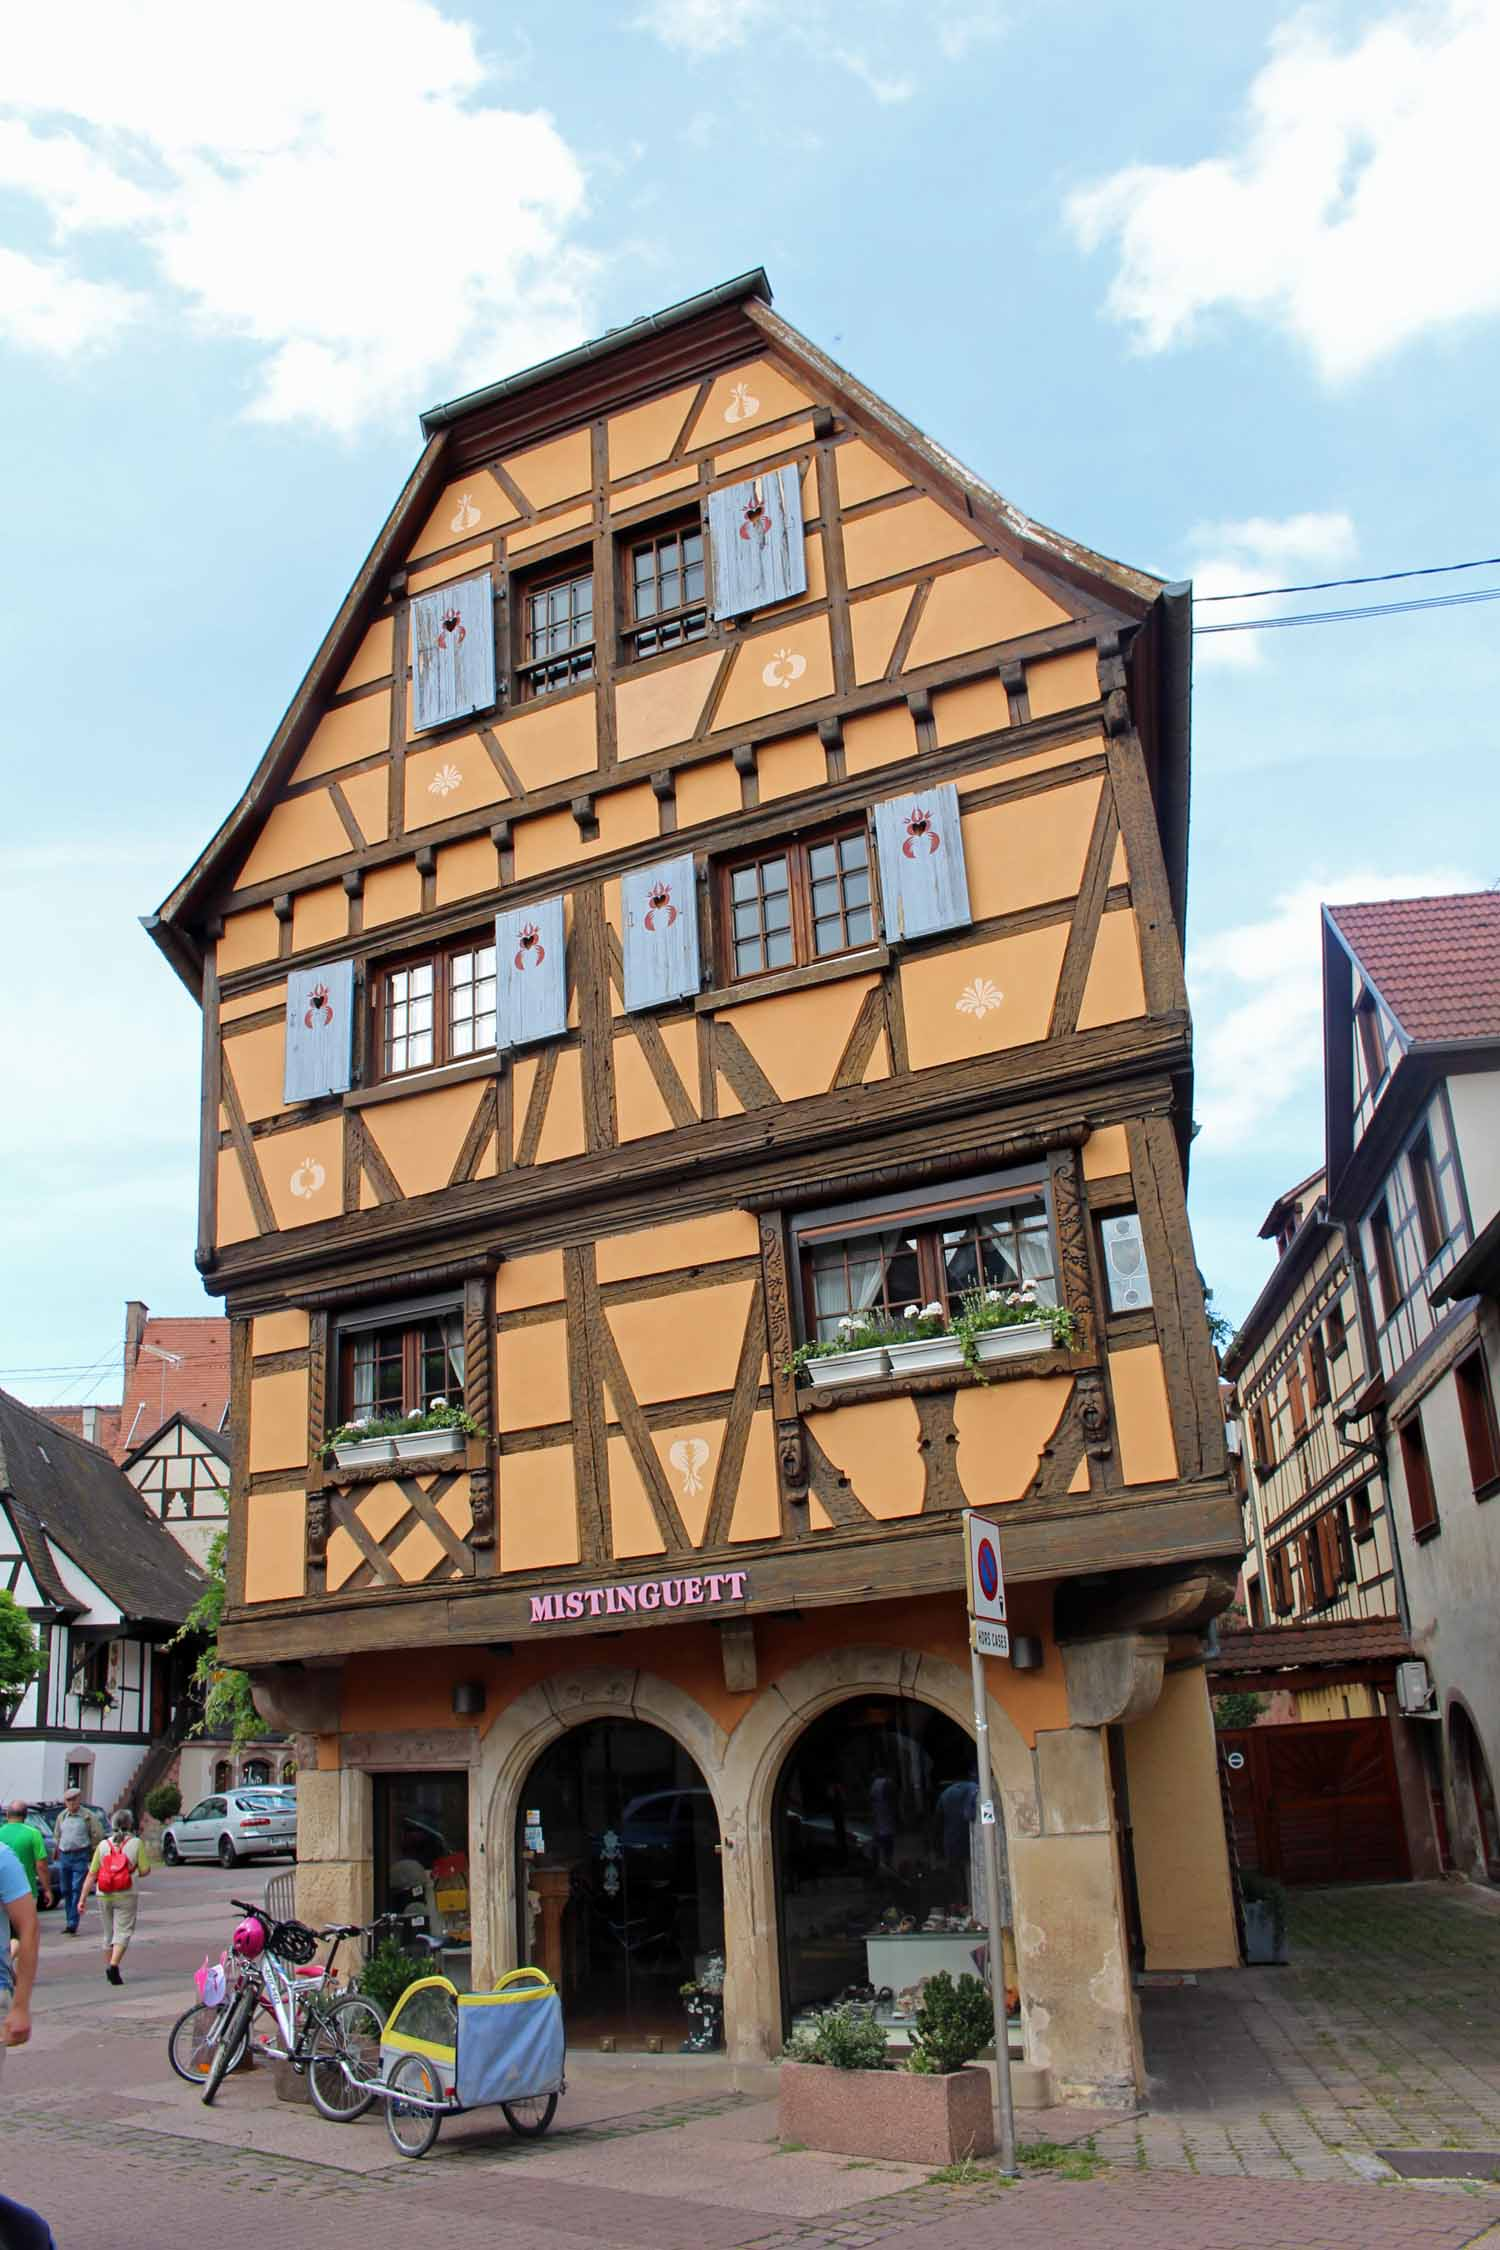 Obernai, Alsace, typical house